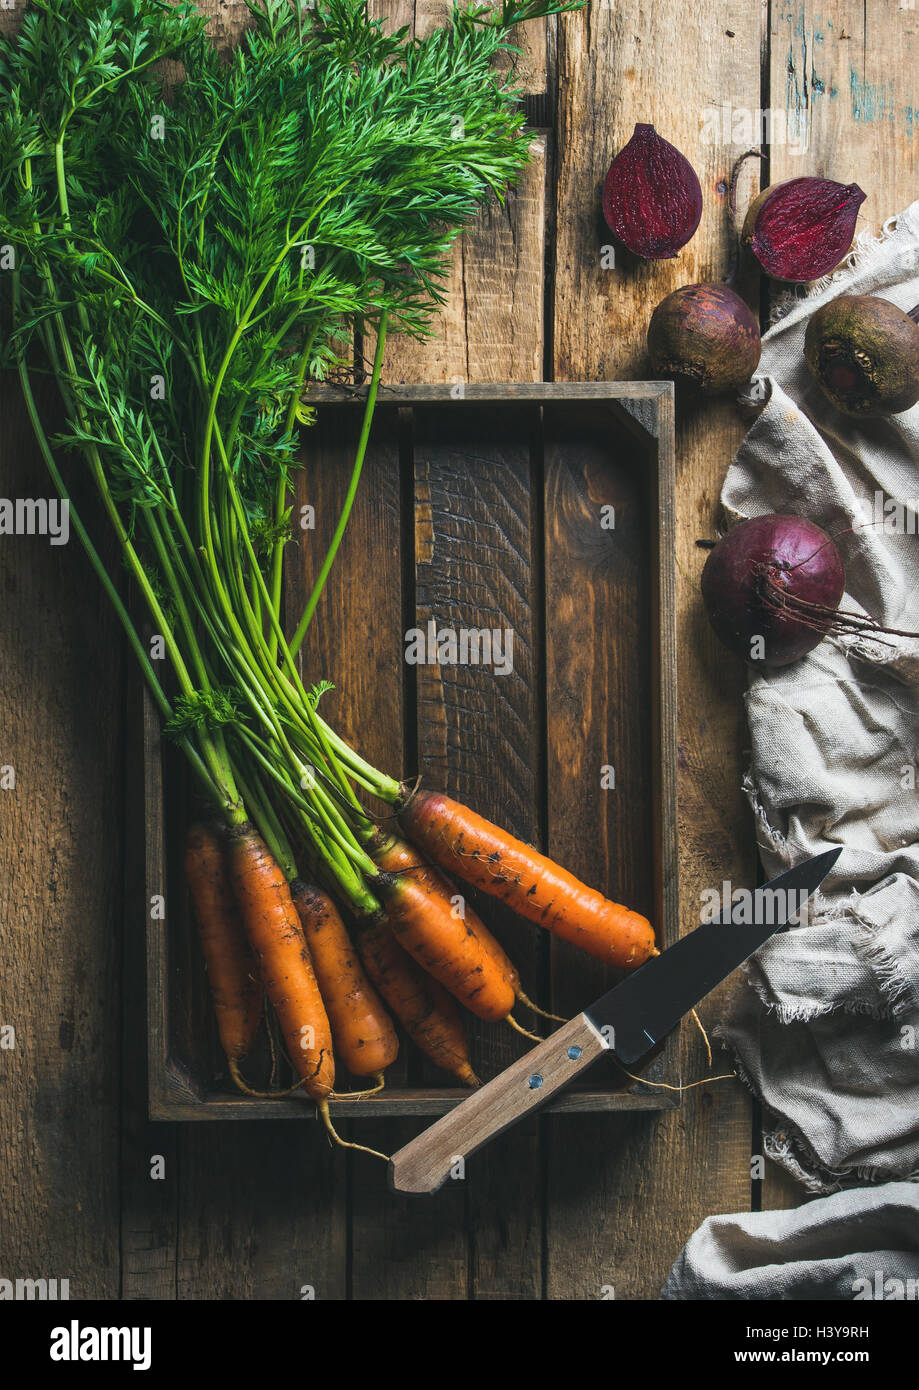 Garden carrots and beetroots in wooden tray over rustic background - Stock Image